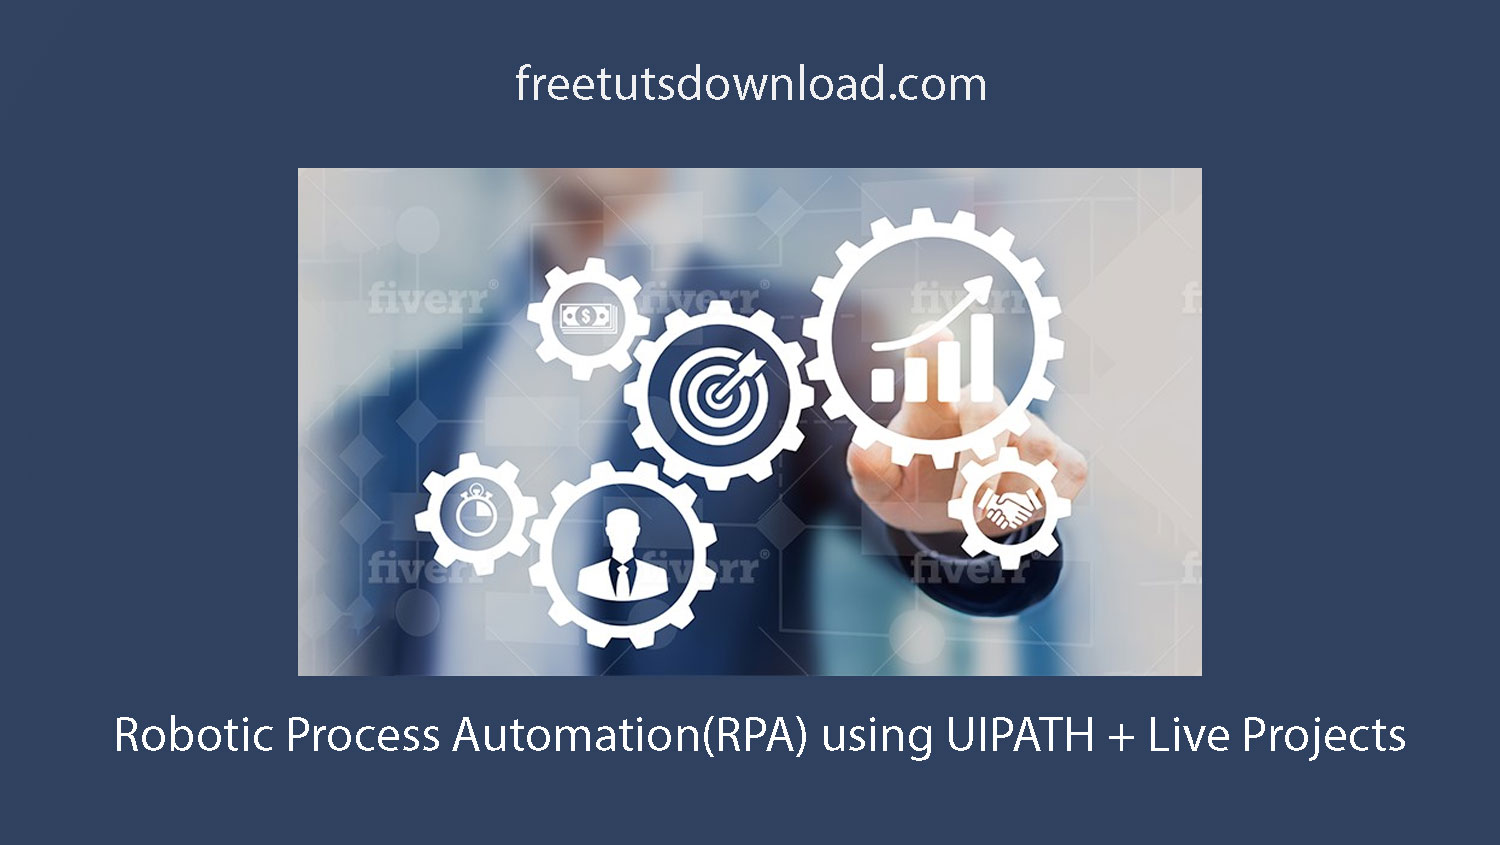 Robotic Process Automation(RPA) using UIPATH + Live Projects